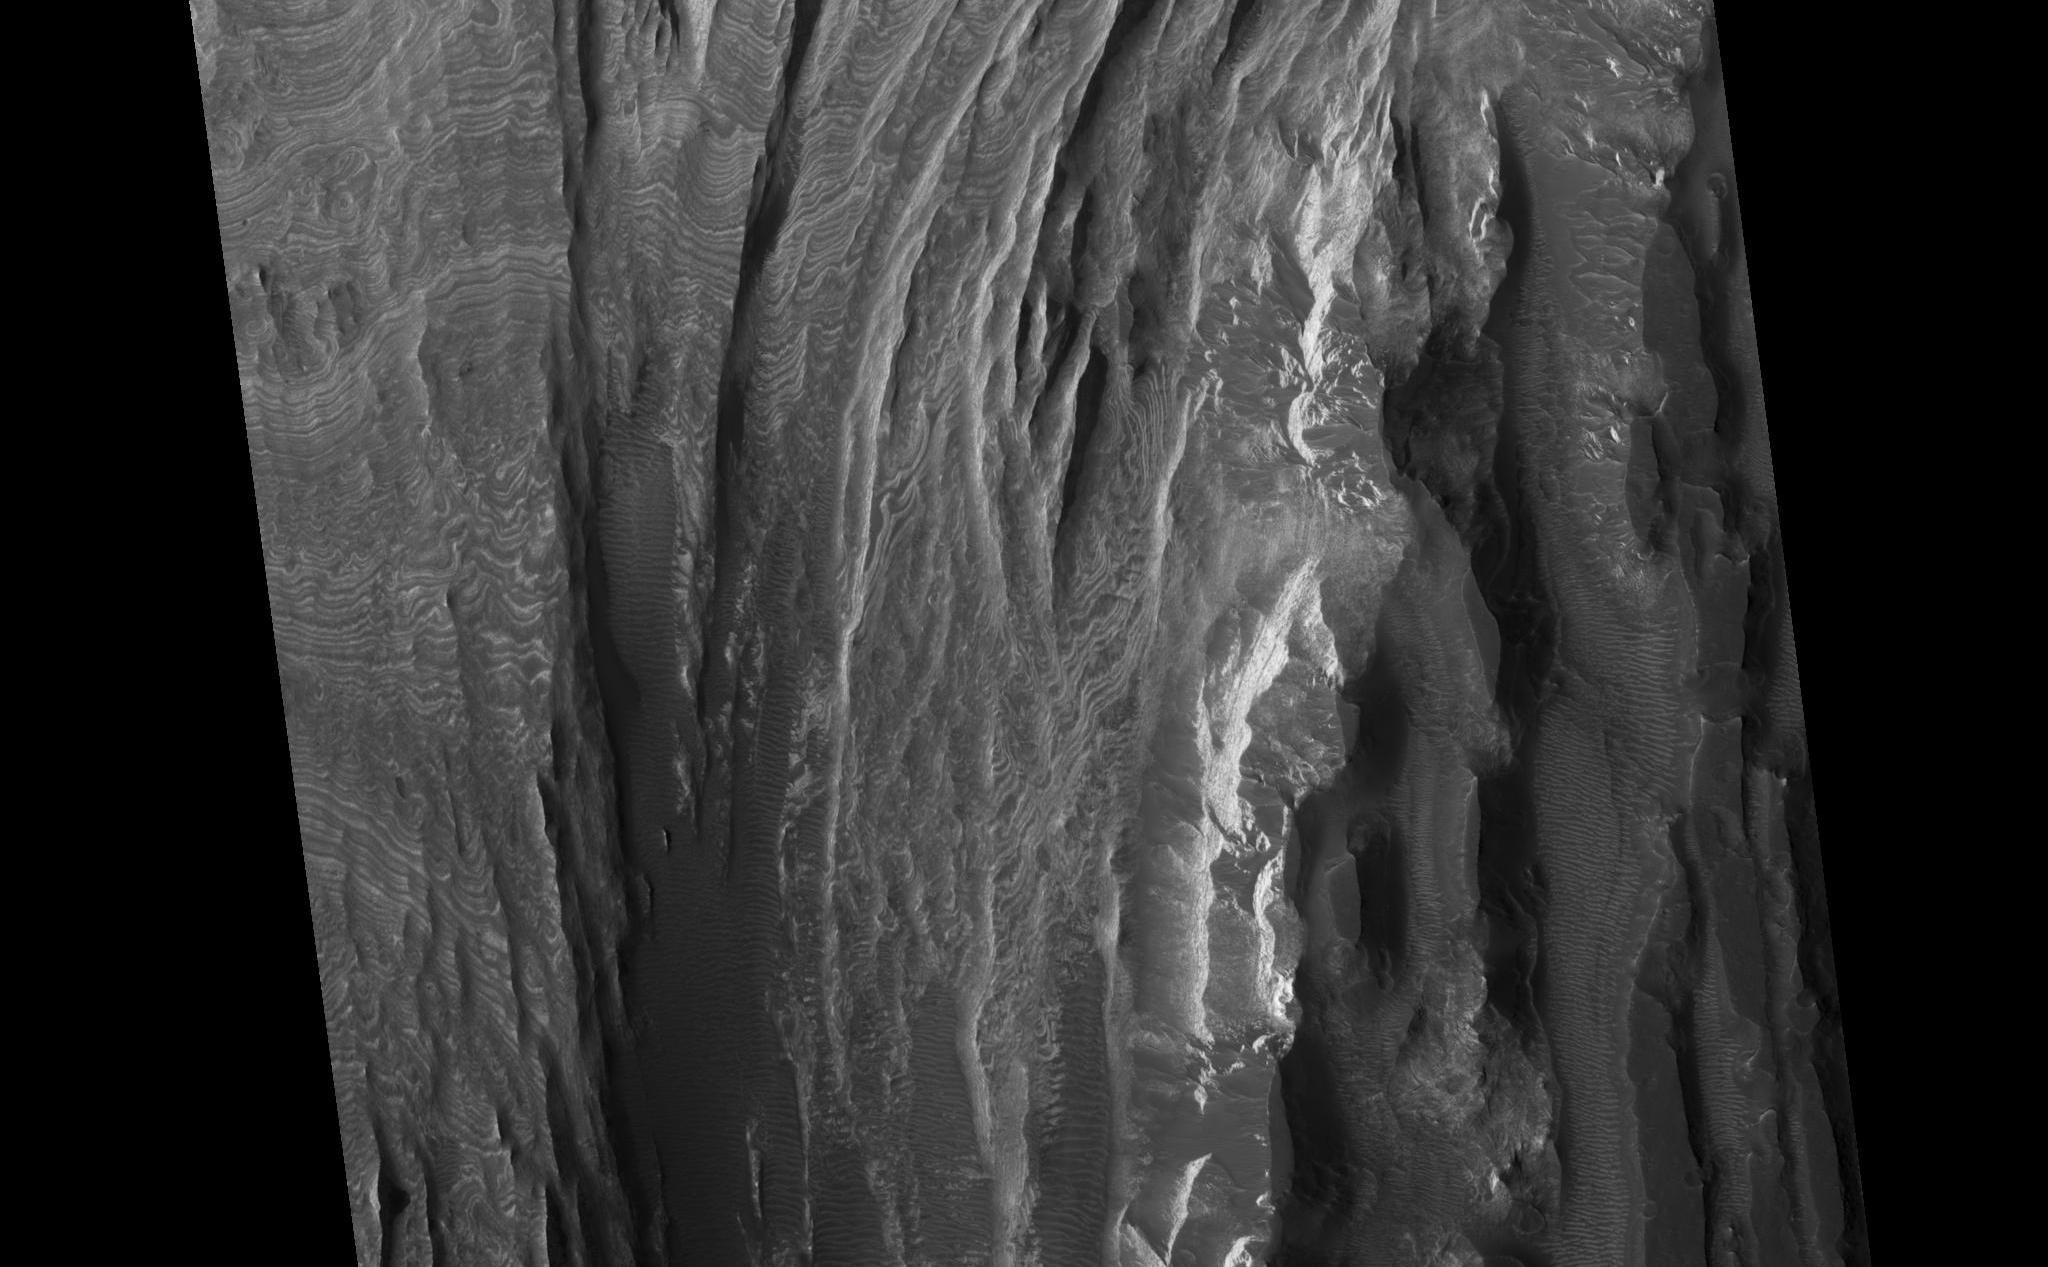 This HiRISE image shows a portion of interior layered deposits (ILD) in Juventae Chasma. Juventae Chasma is a large depression near the equatorial canyon system Valles Marineris. The scene is along the top of a mound of layered deposits on the floor of Juventae Chasma. Dunes are seen in the low-lying, darker regions. Very fine layers are also seen (see subimage, approximately 1 km across). Understanding what kinds of materials formed the layers, how they were set in place, and how they have evolved will provide insight into Martian geologic history.